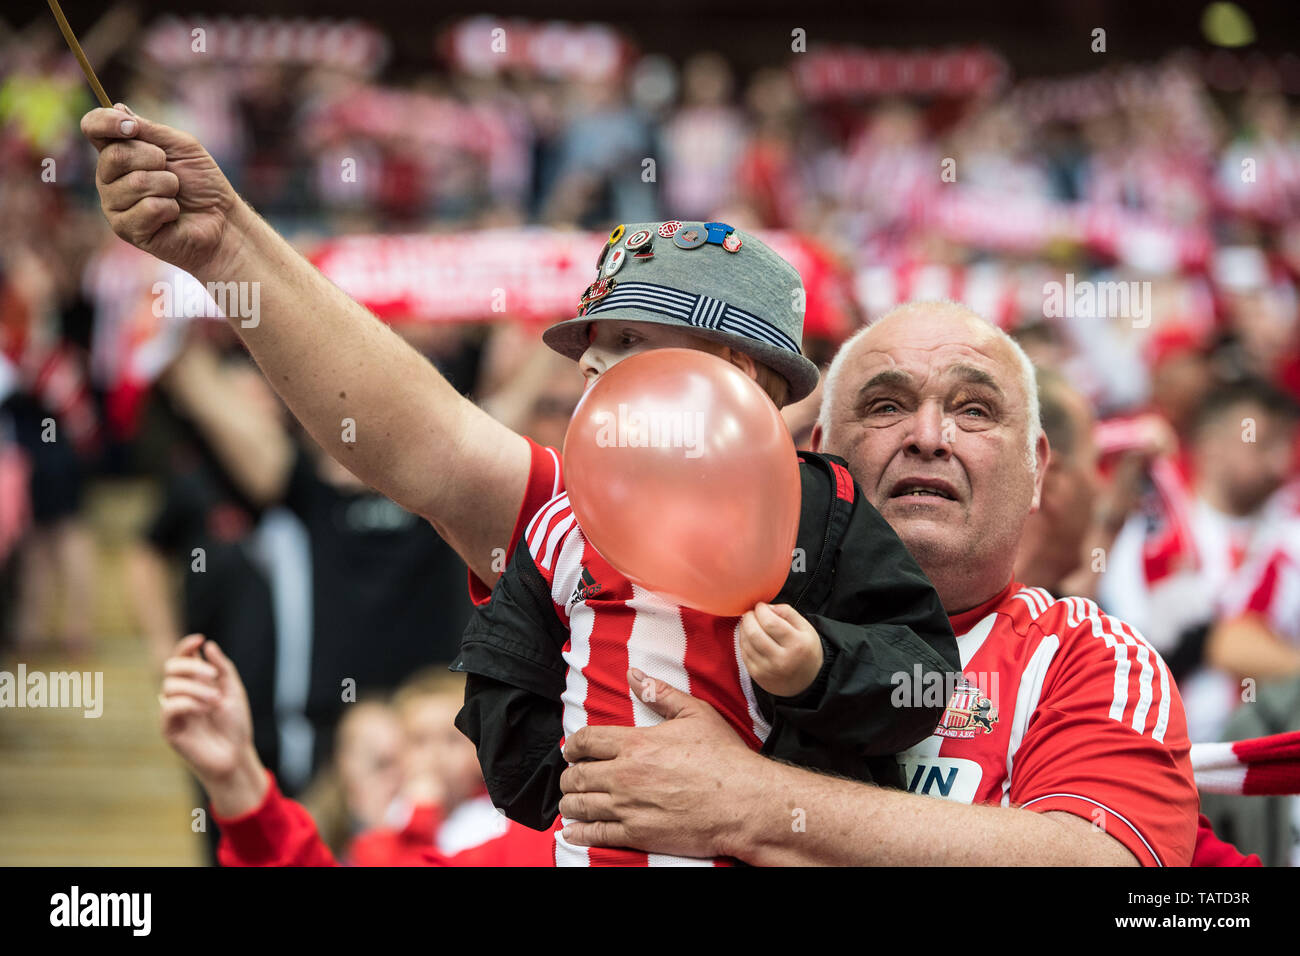 LONDON, ENGLAND - MAY 26: Sunderland  fans during the Sky Bet League One Play-off Final match between Charlton Athletic and Sunderland at Wembley Stadium on May 26, 2019 in London, United Kingdom. (Photo by Sebastian Frej/MB Media/Getty Images) - Stock Image